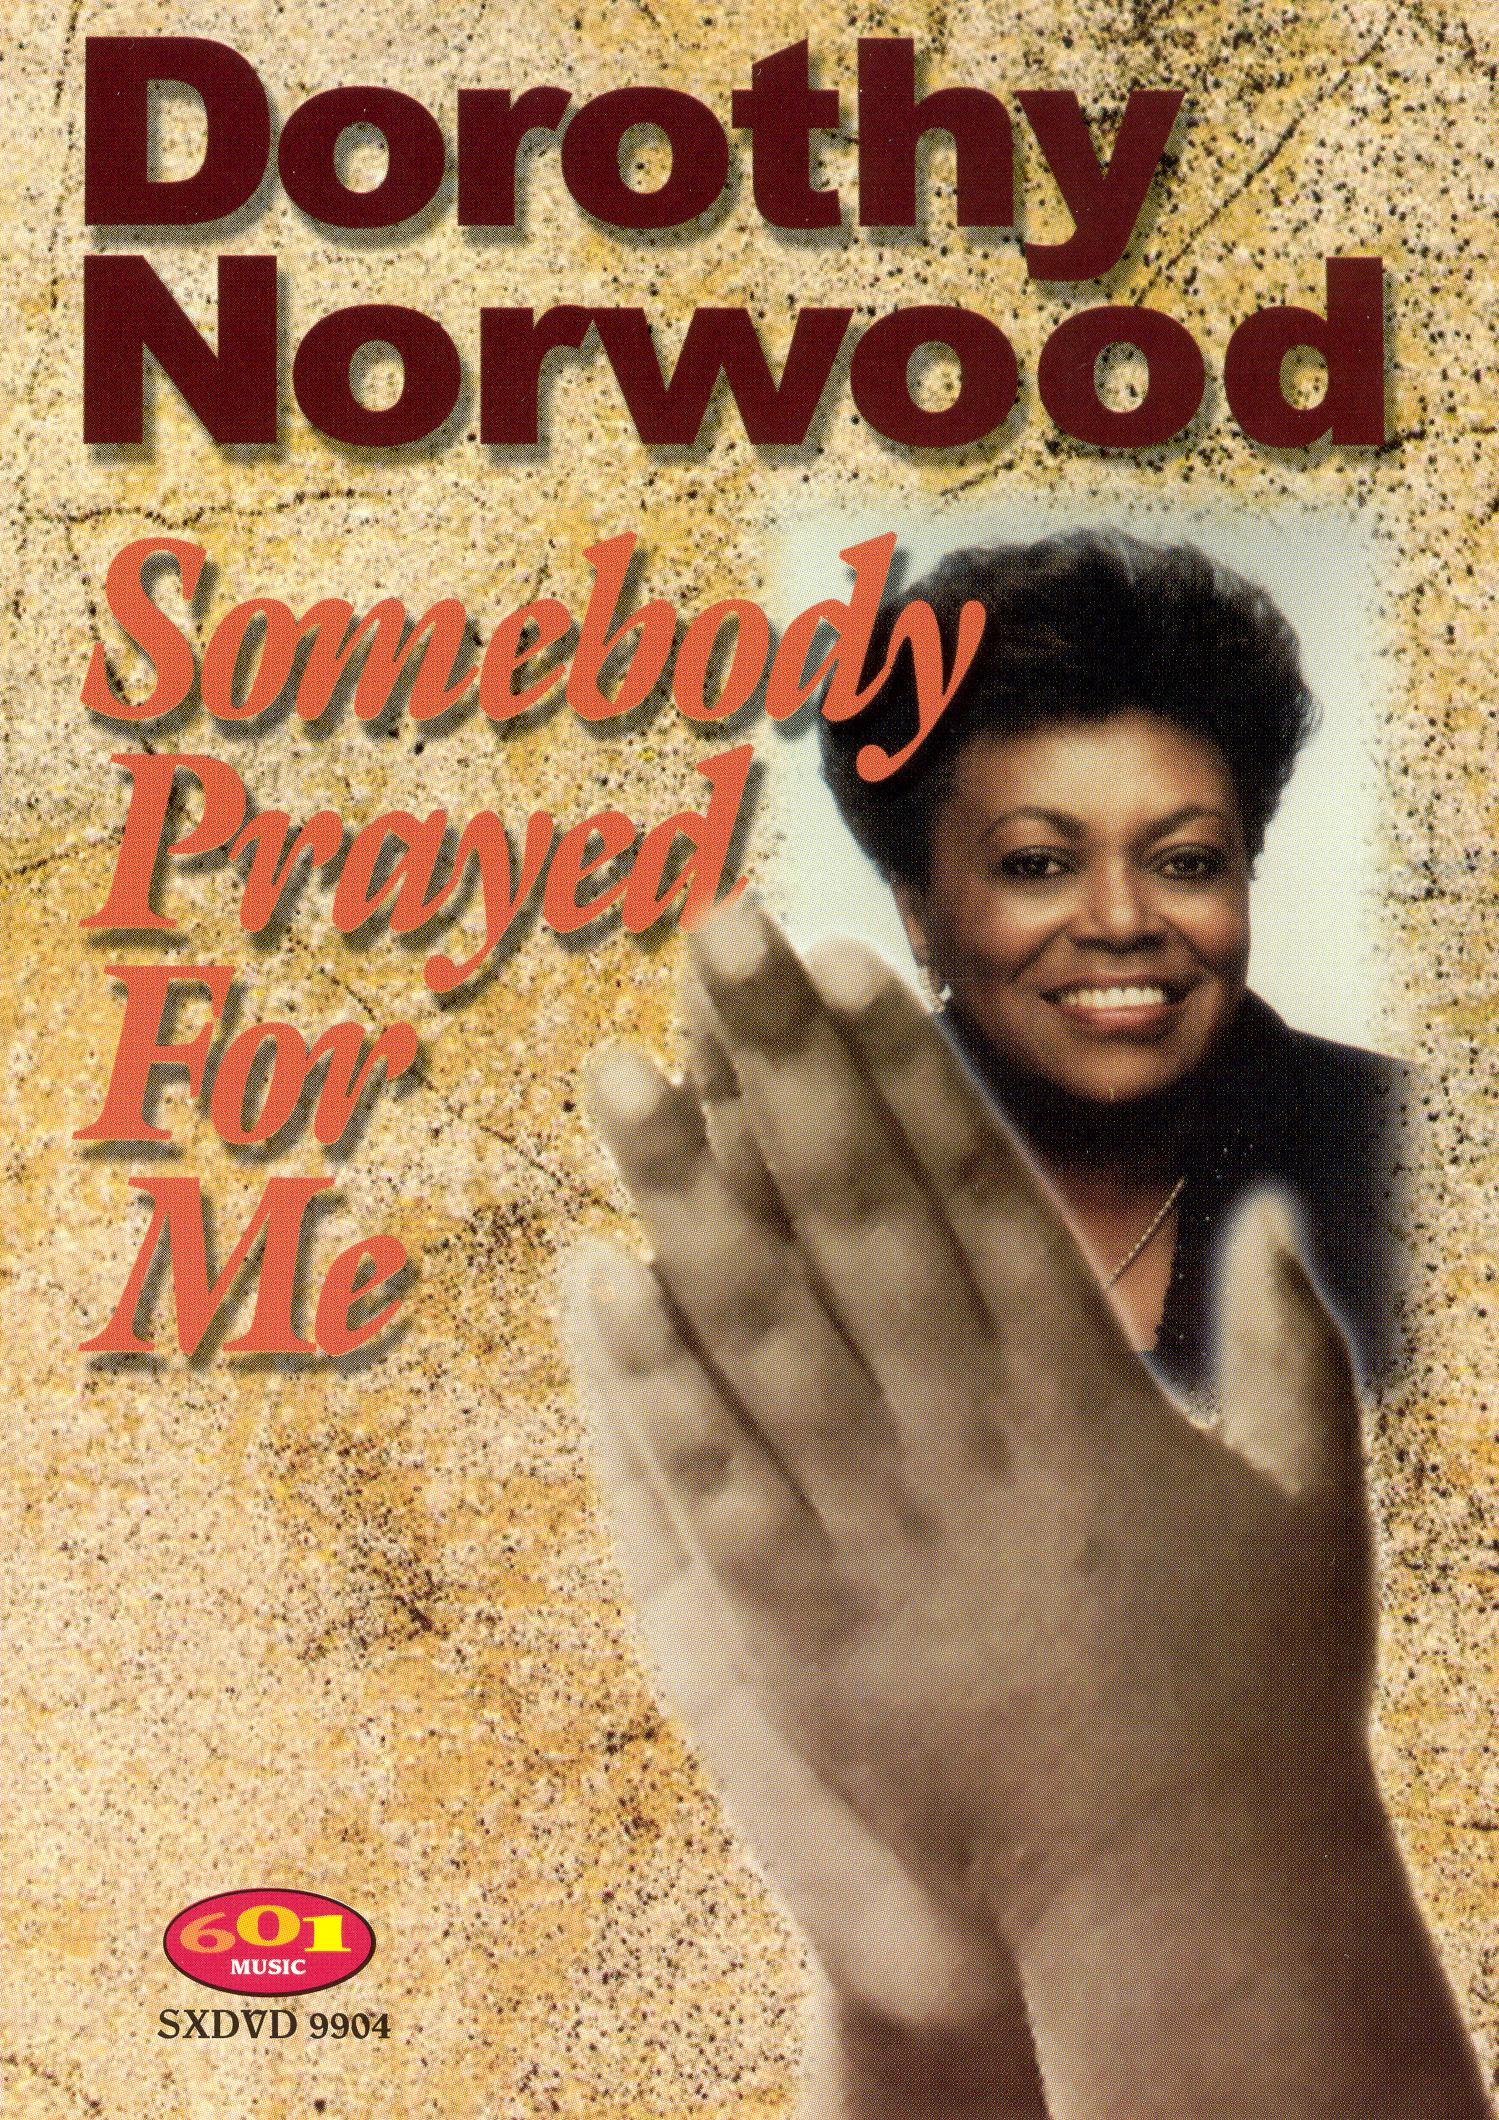 Dorothy Norwood: Somebody Prayed for Me